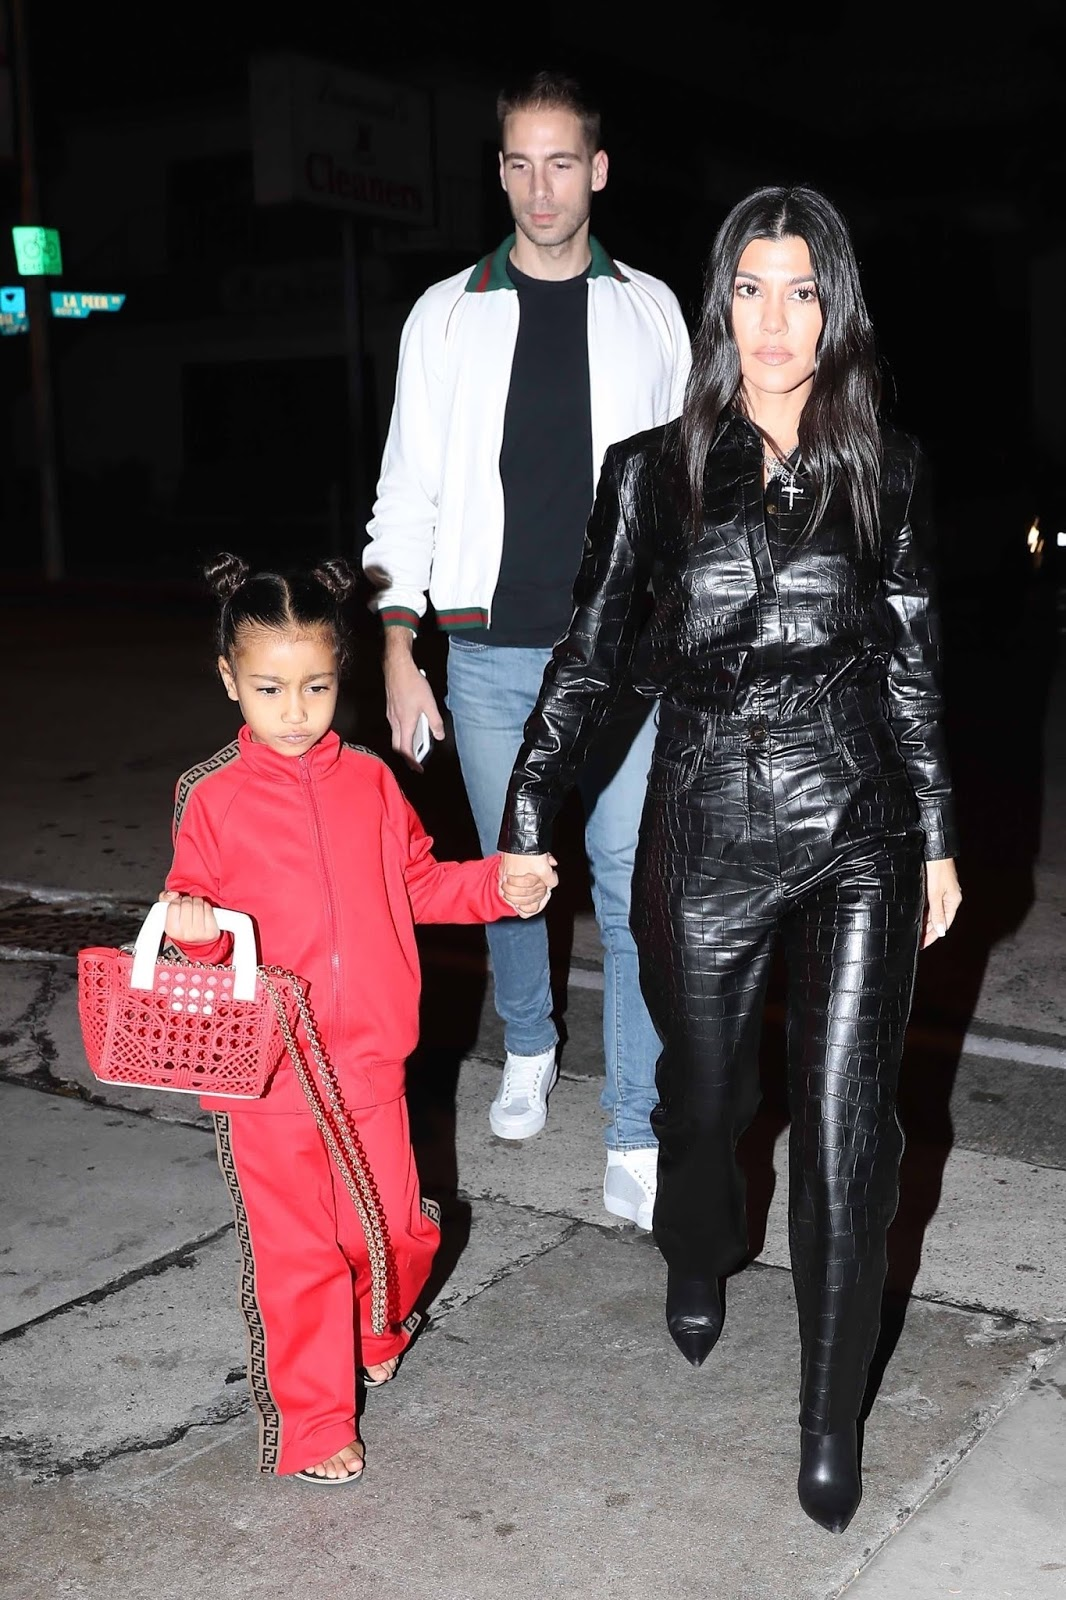 Kourtney Kardashian - goes to dinner at Craig's with her niece North West, West Hollywood 01/11/2019